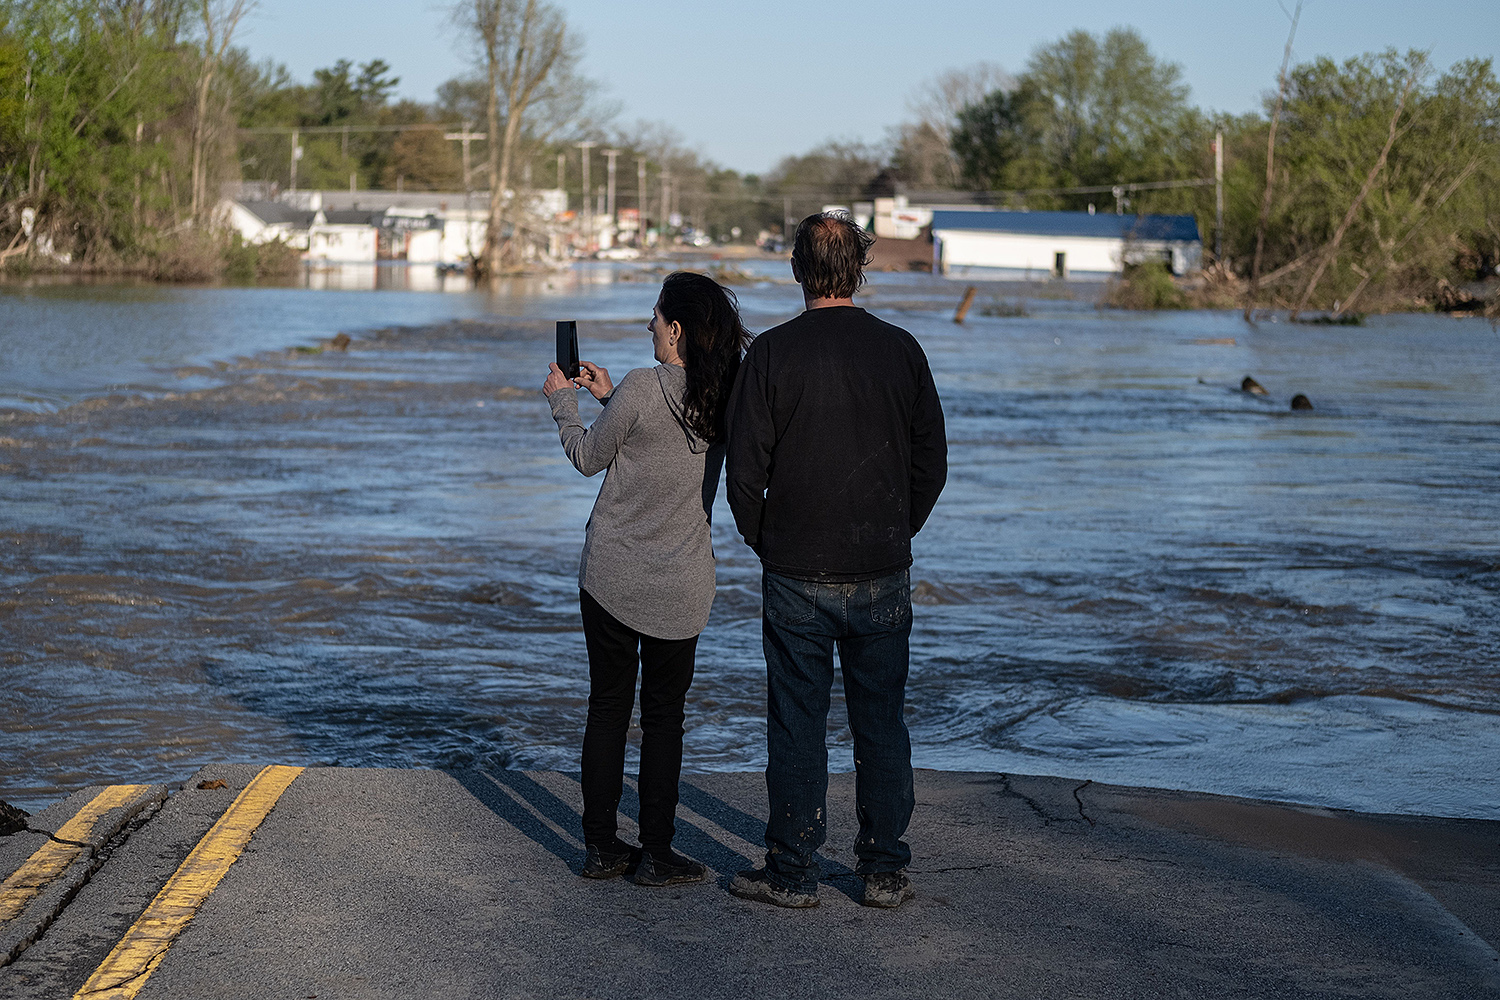 Residents look out at the floodwaters in Sanford, Michigan, on May 20. More than 10,000 people were evacuated after two dams failed following heavy rain. SETH HERALD/AFP via Getty Images